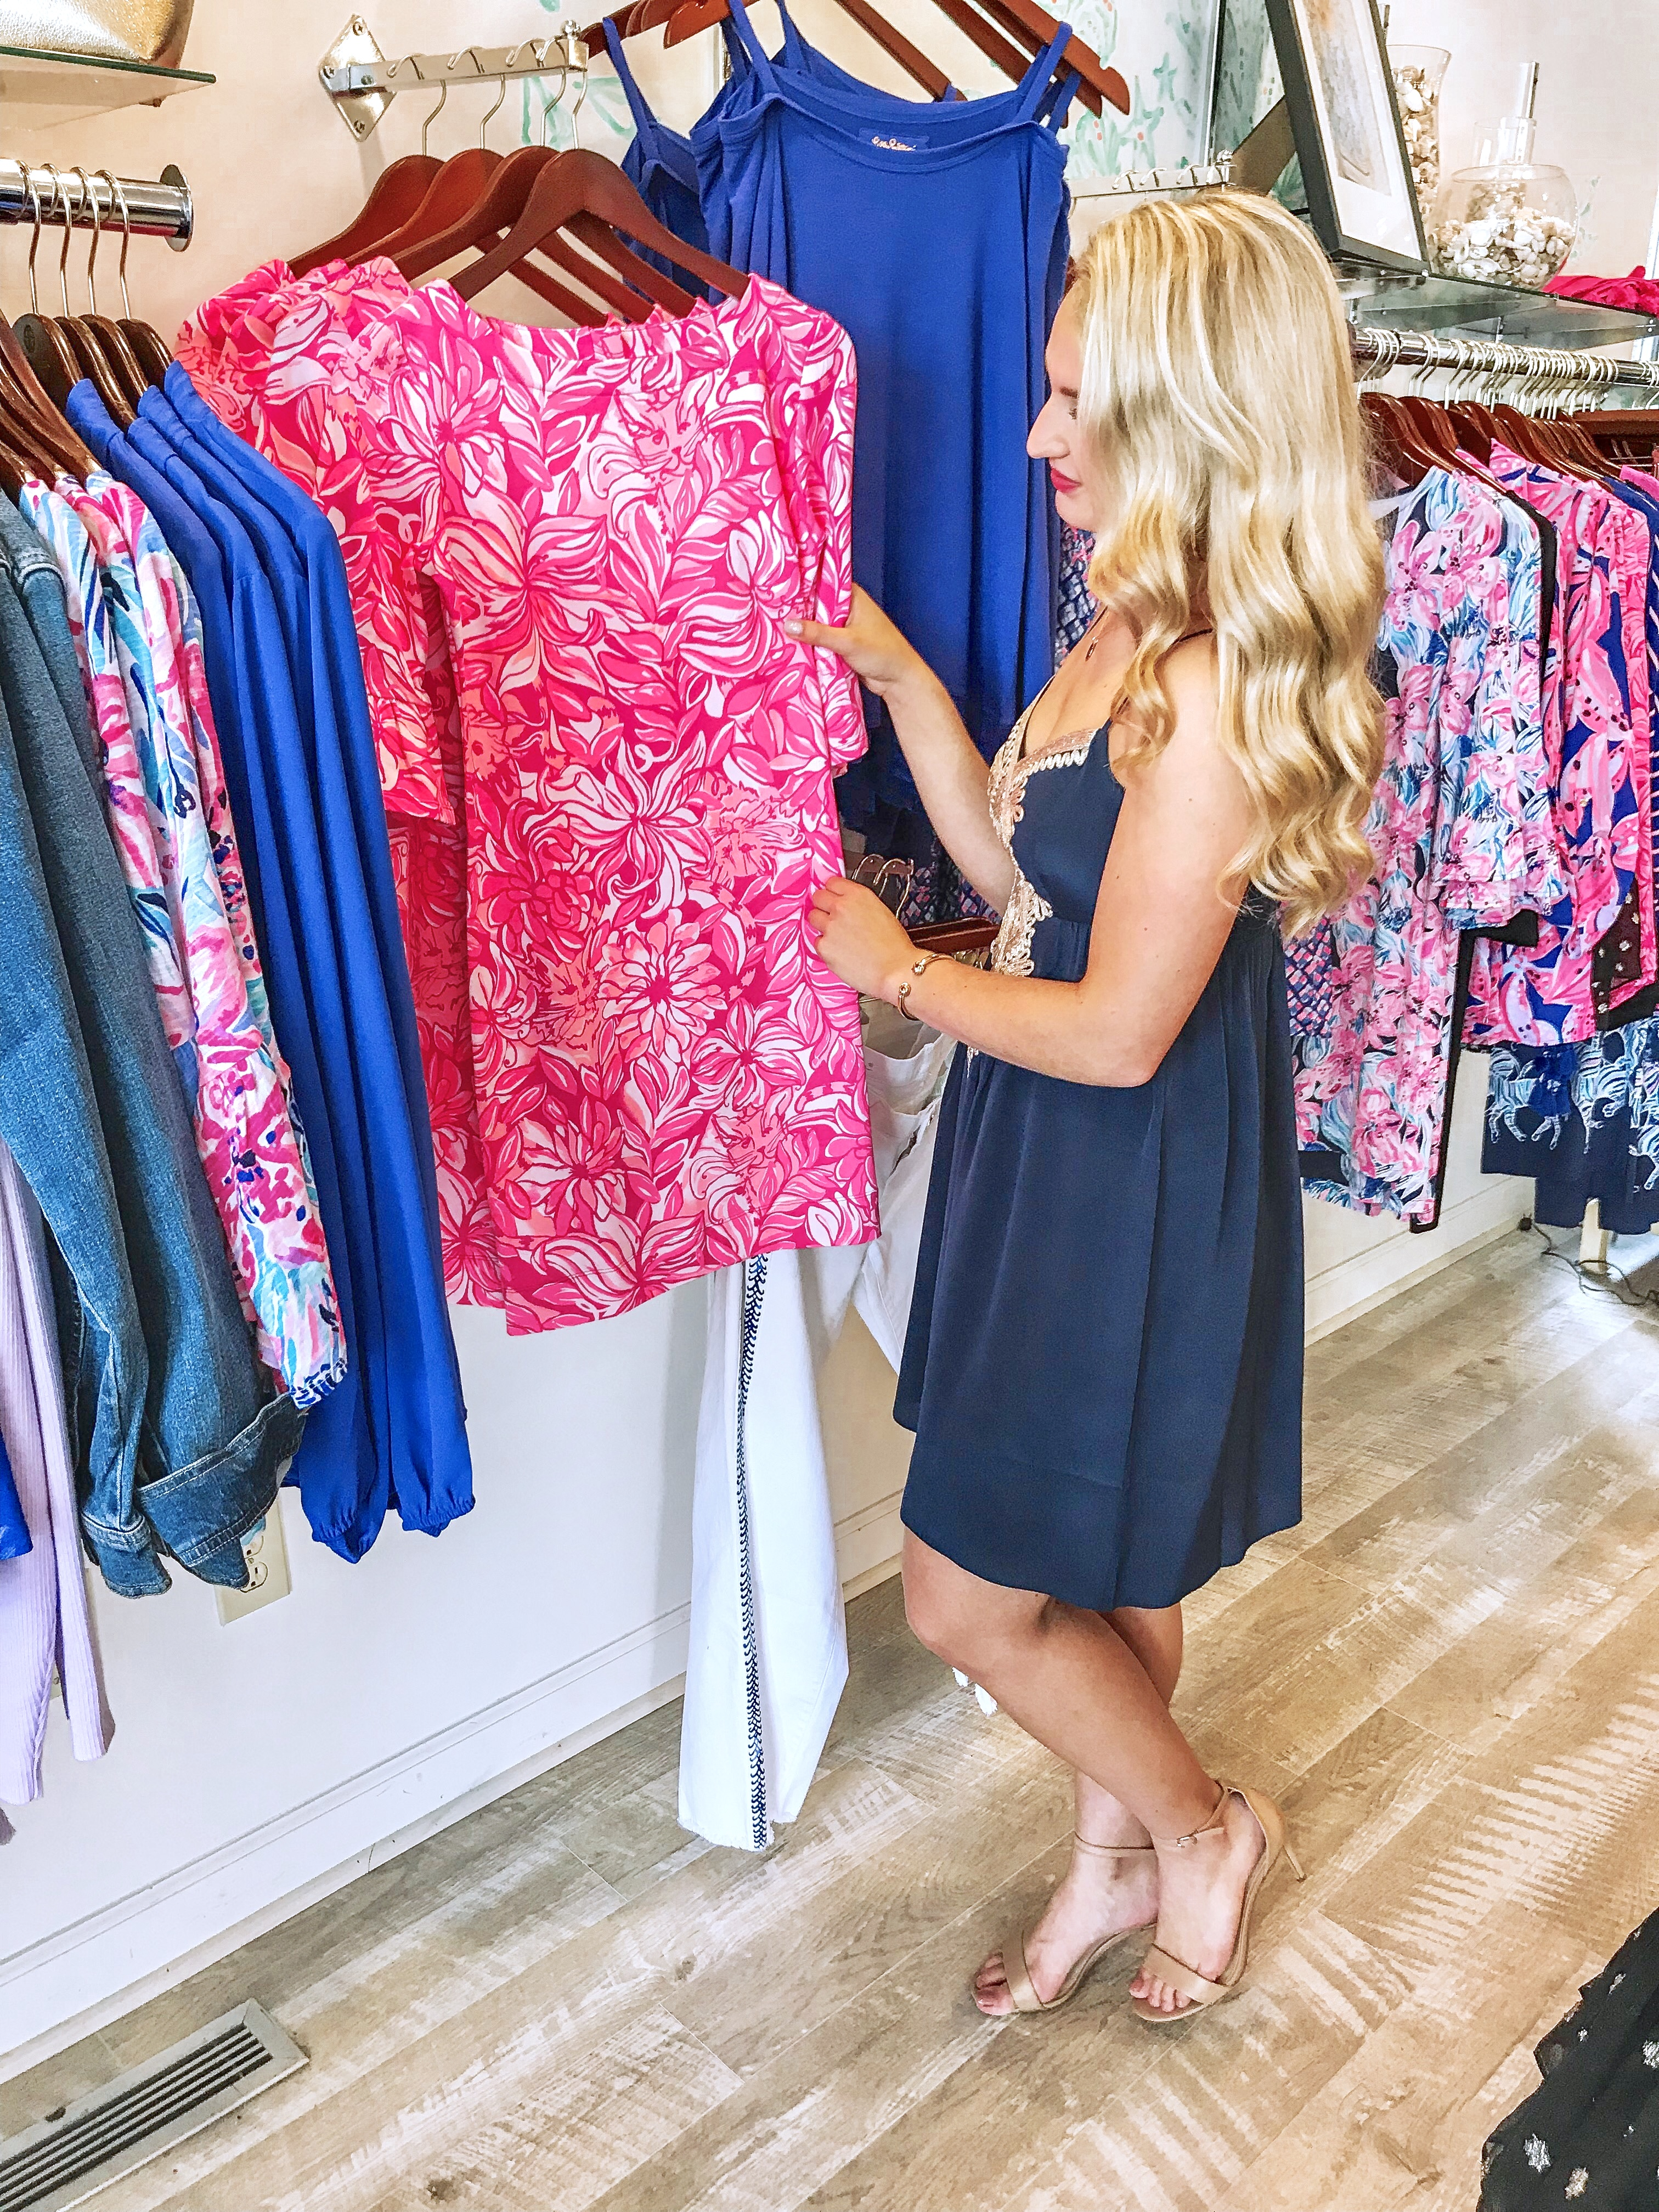 f60da0bcb5 WHAT TO KNOW ABOUT THE AFTER PARTY SALE BEFORE YOU SHOP: according to  lillypulitzer.com